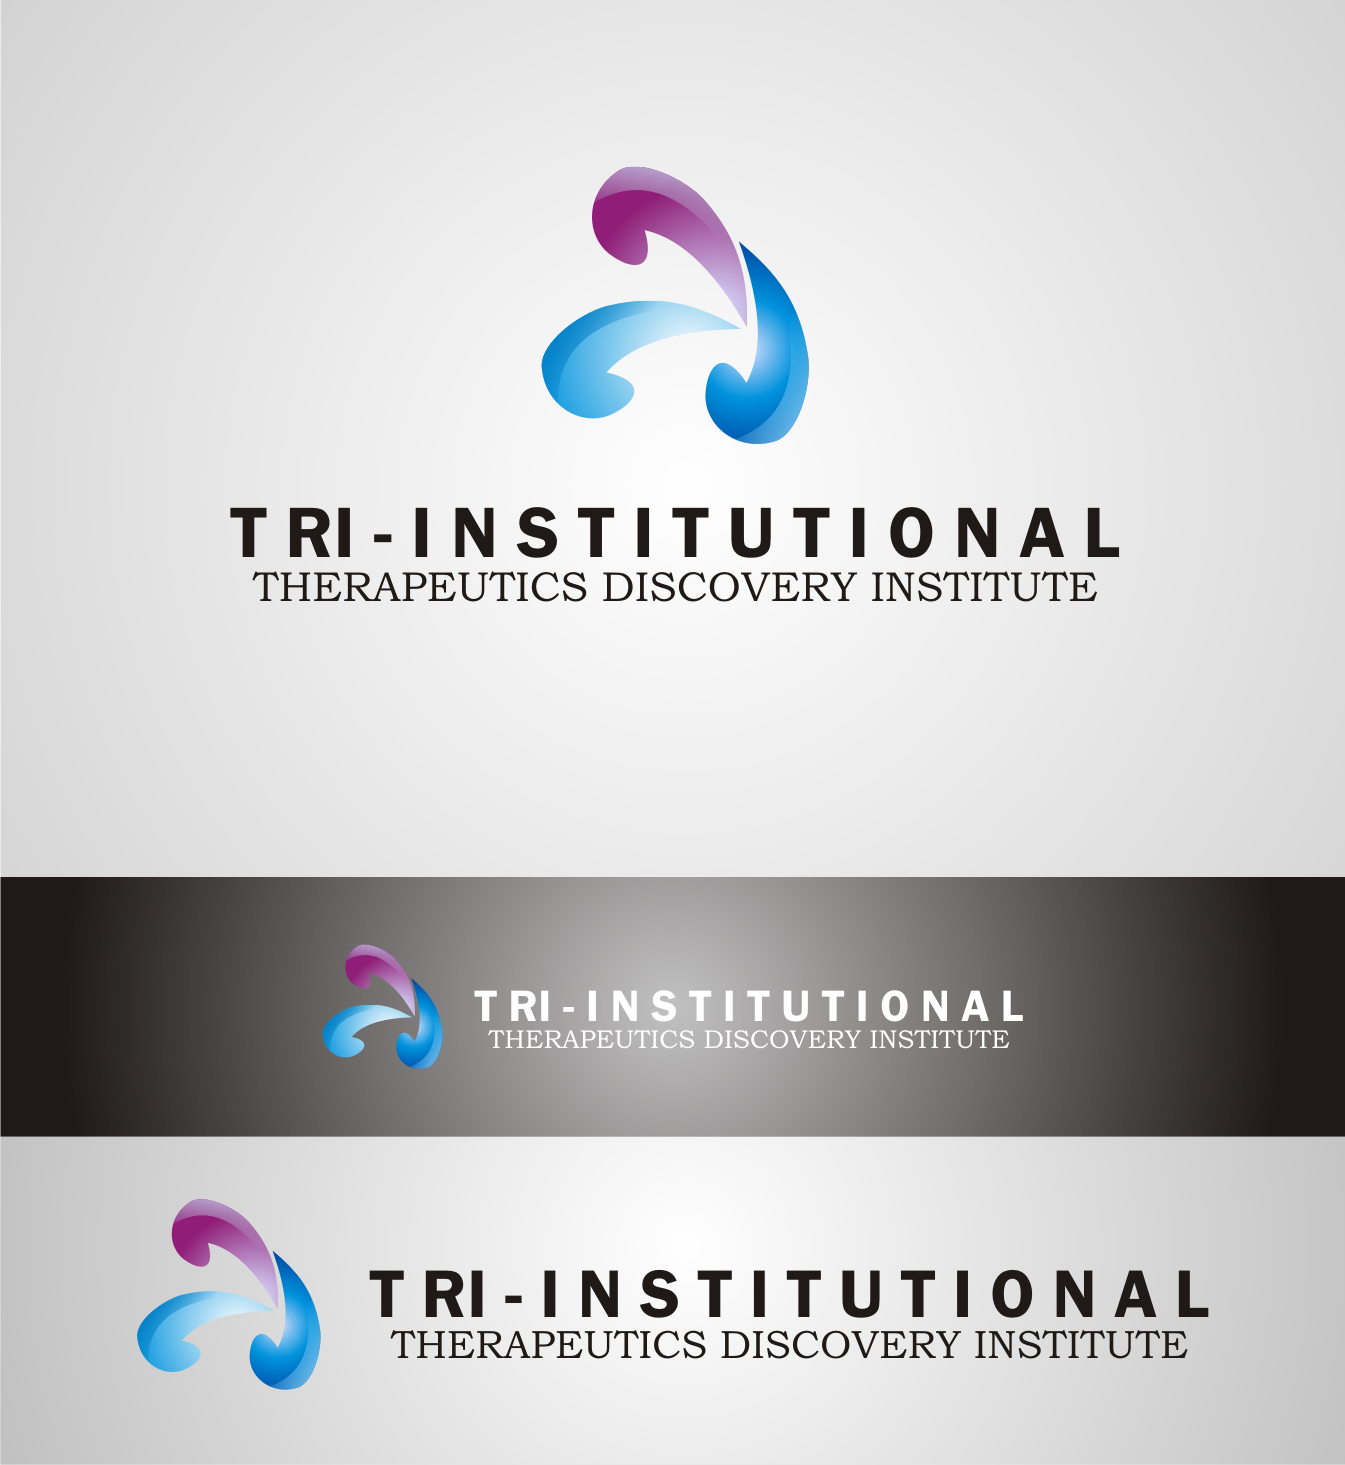 Logo Design by Nthus Nthis - Entry No. 203 in the Logo Design Contest Inspiring Logo Design for Tri-Institutional Therapeutics Discovery Institute.